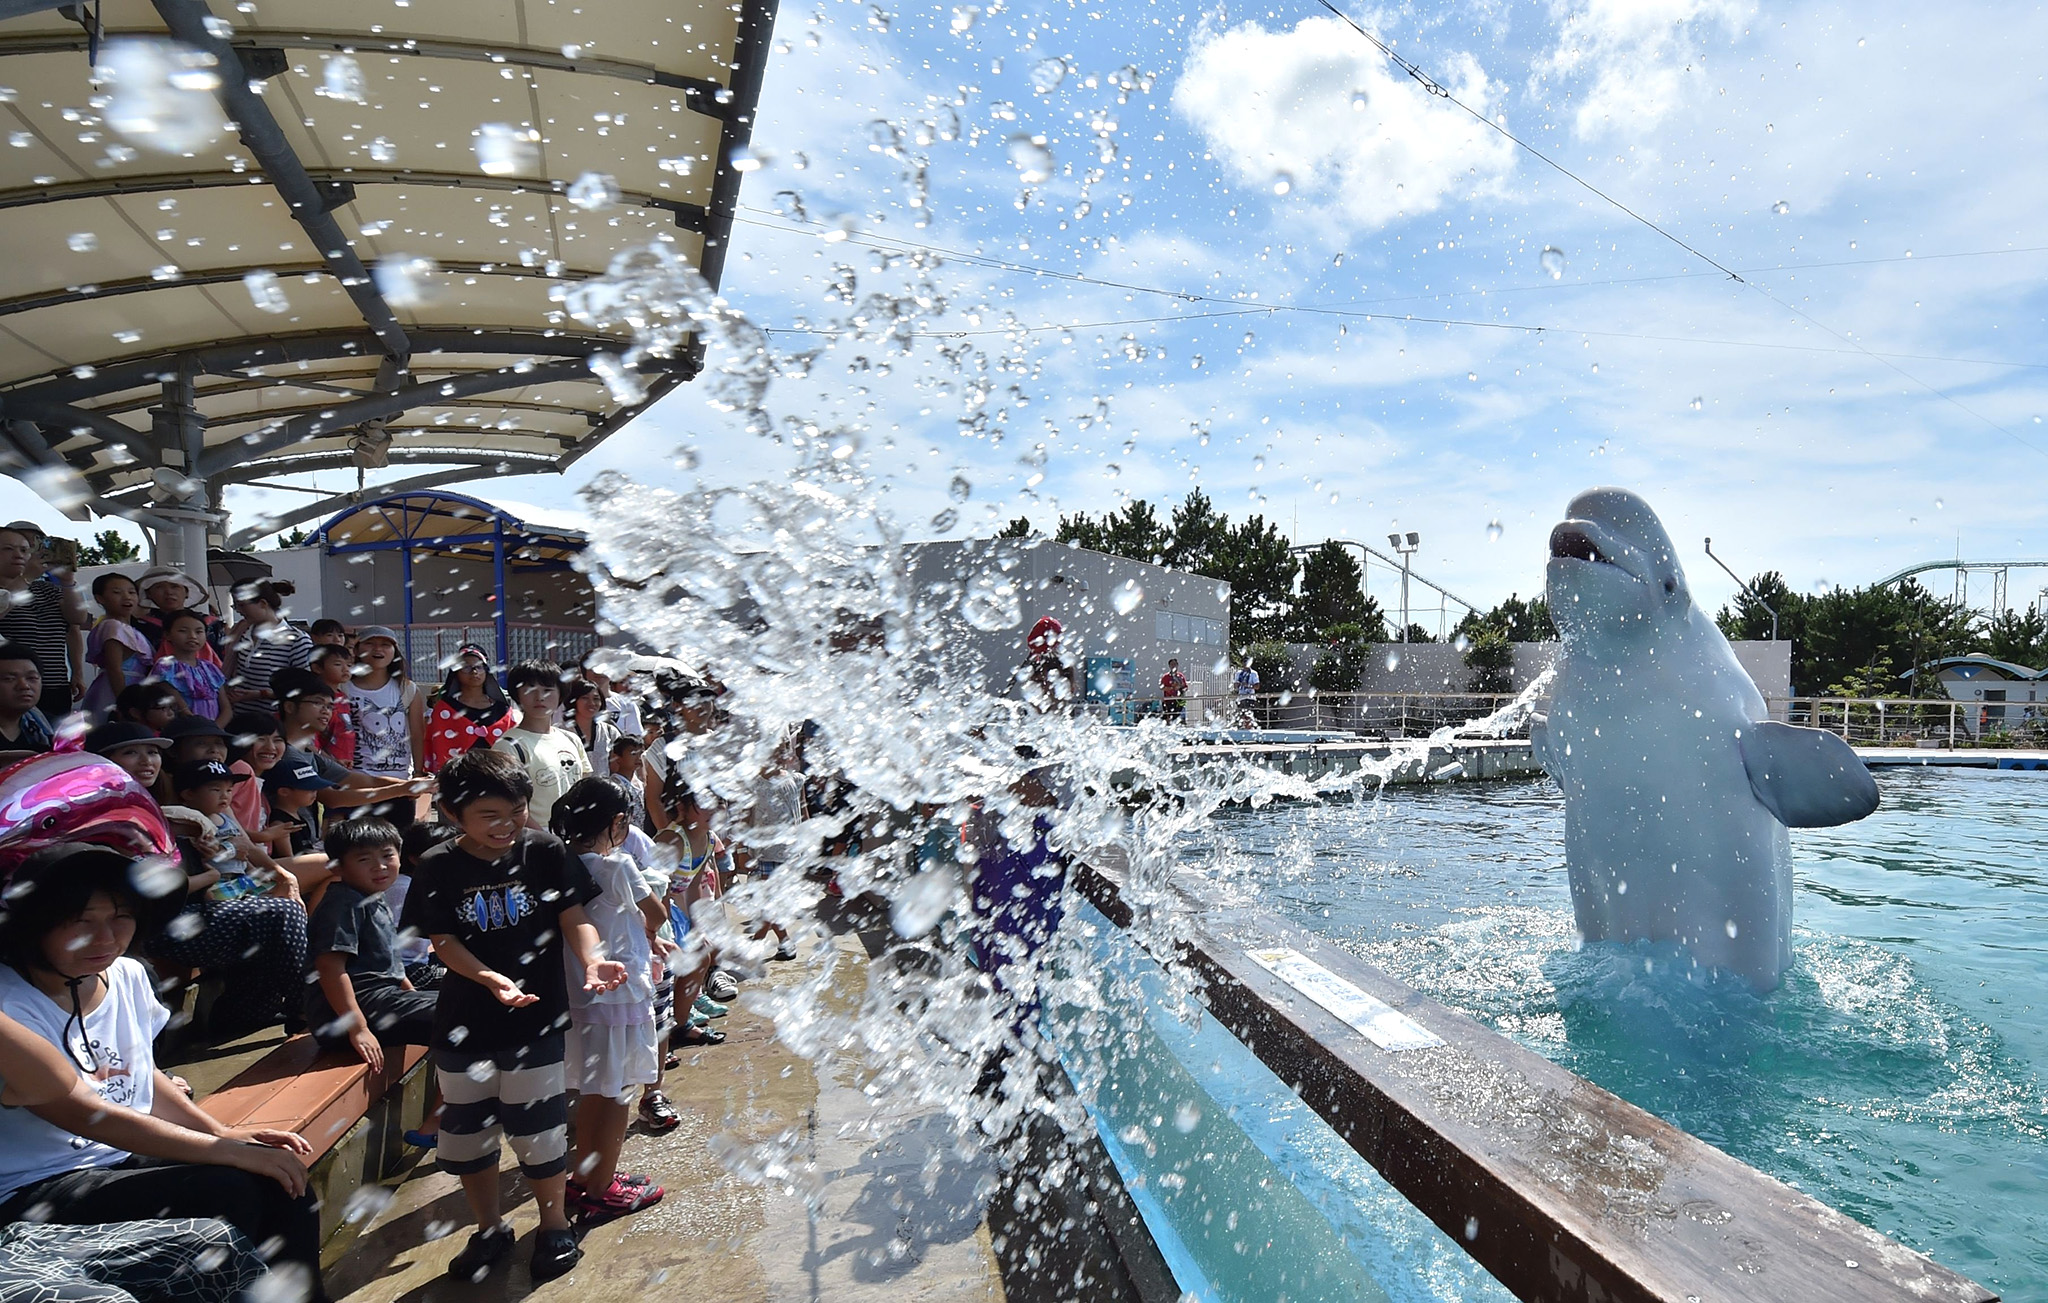 A beluga whale sprays water at visitors during a summer attraction at a sea park in Yokohama, suburban Tokyo on August 5, 2016.